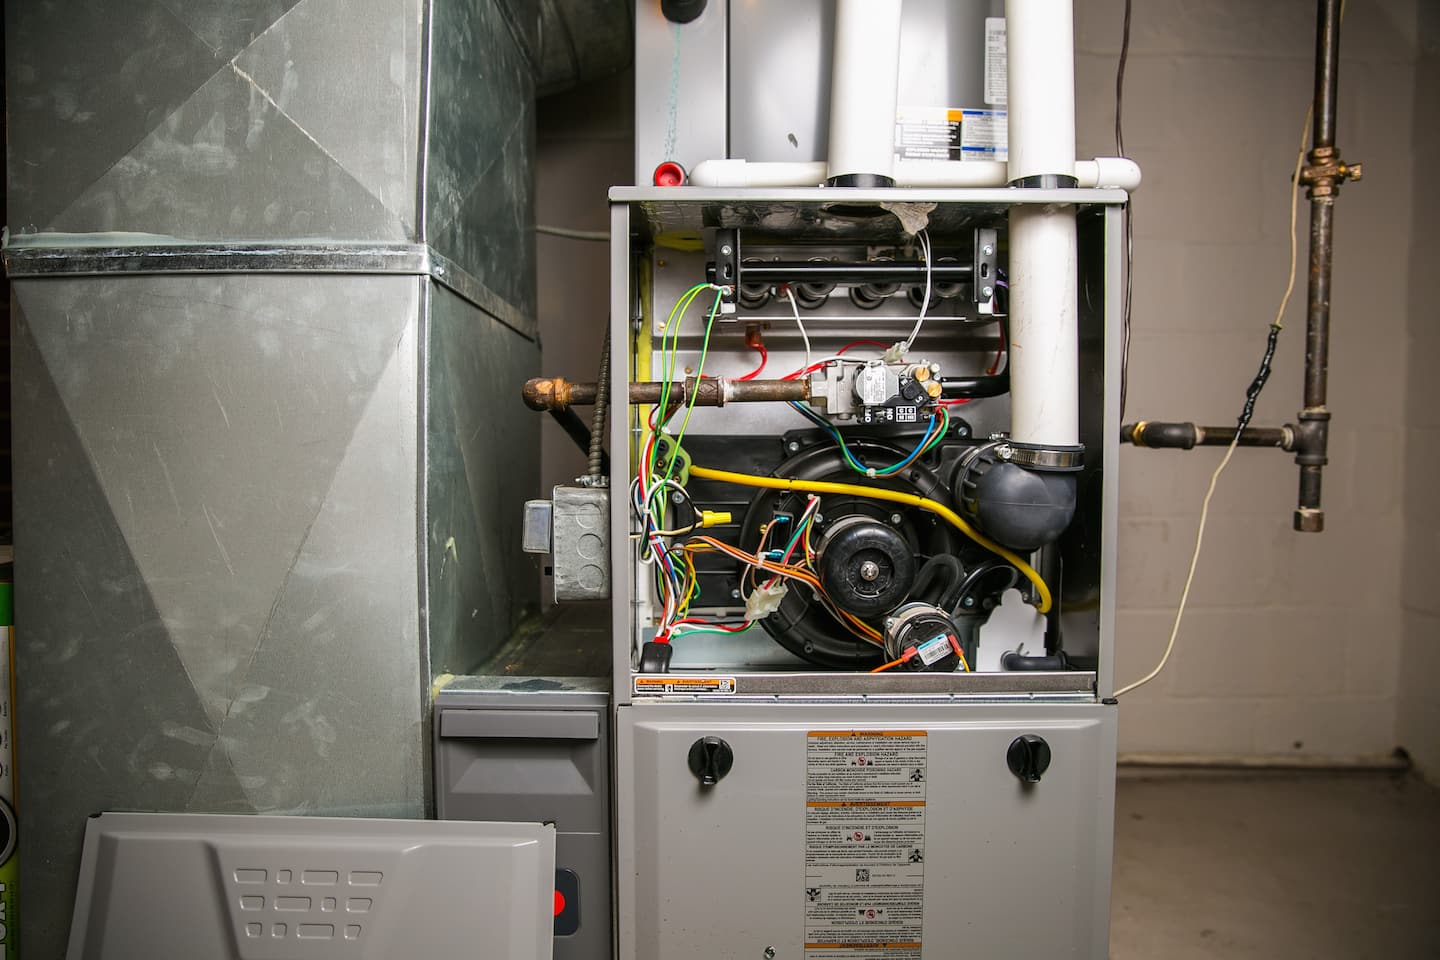 Average cost of new furnace and ac for home - Try These Furnace Troubleshooting Tips Before Calling An Hvac Pro